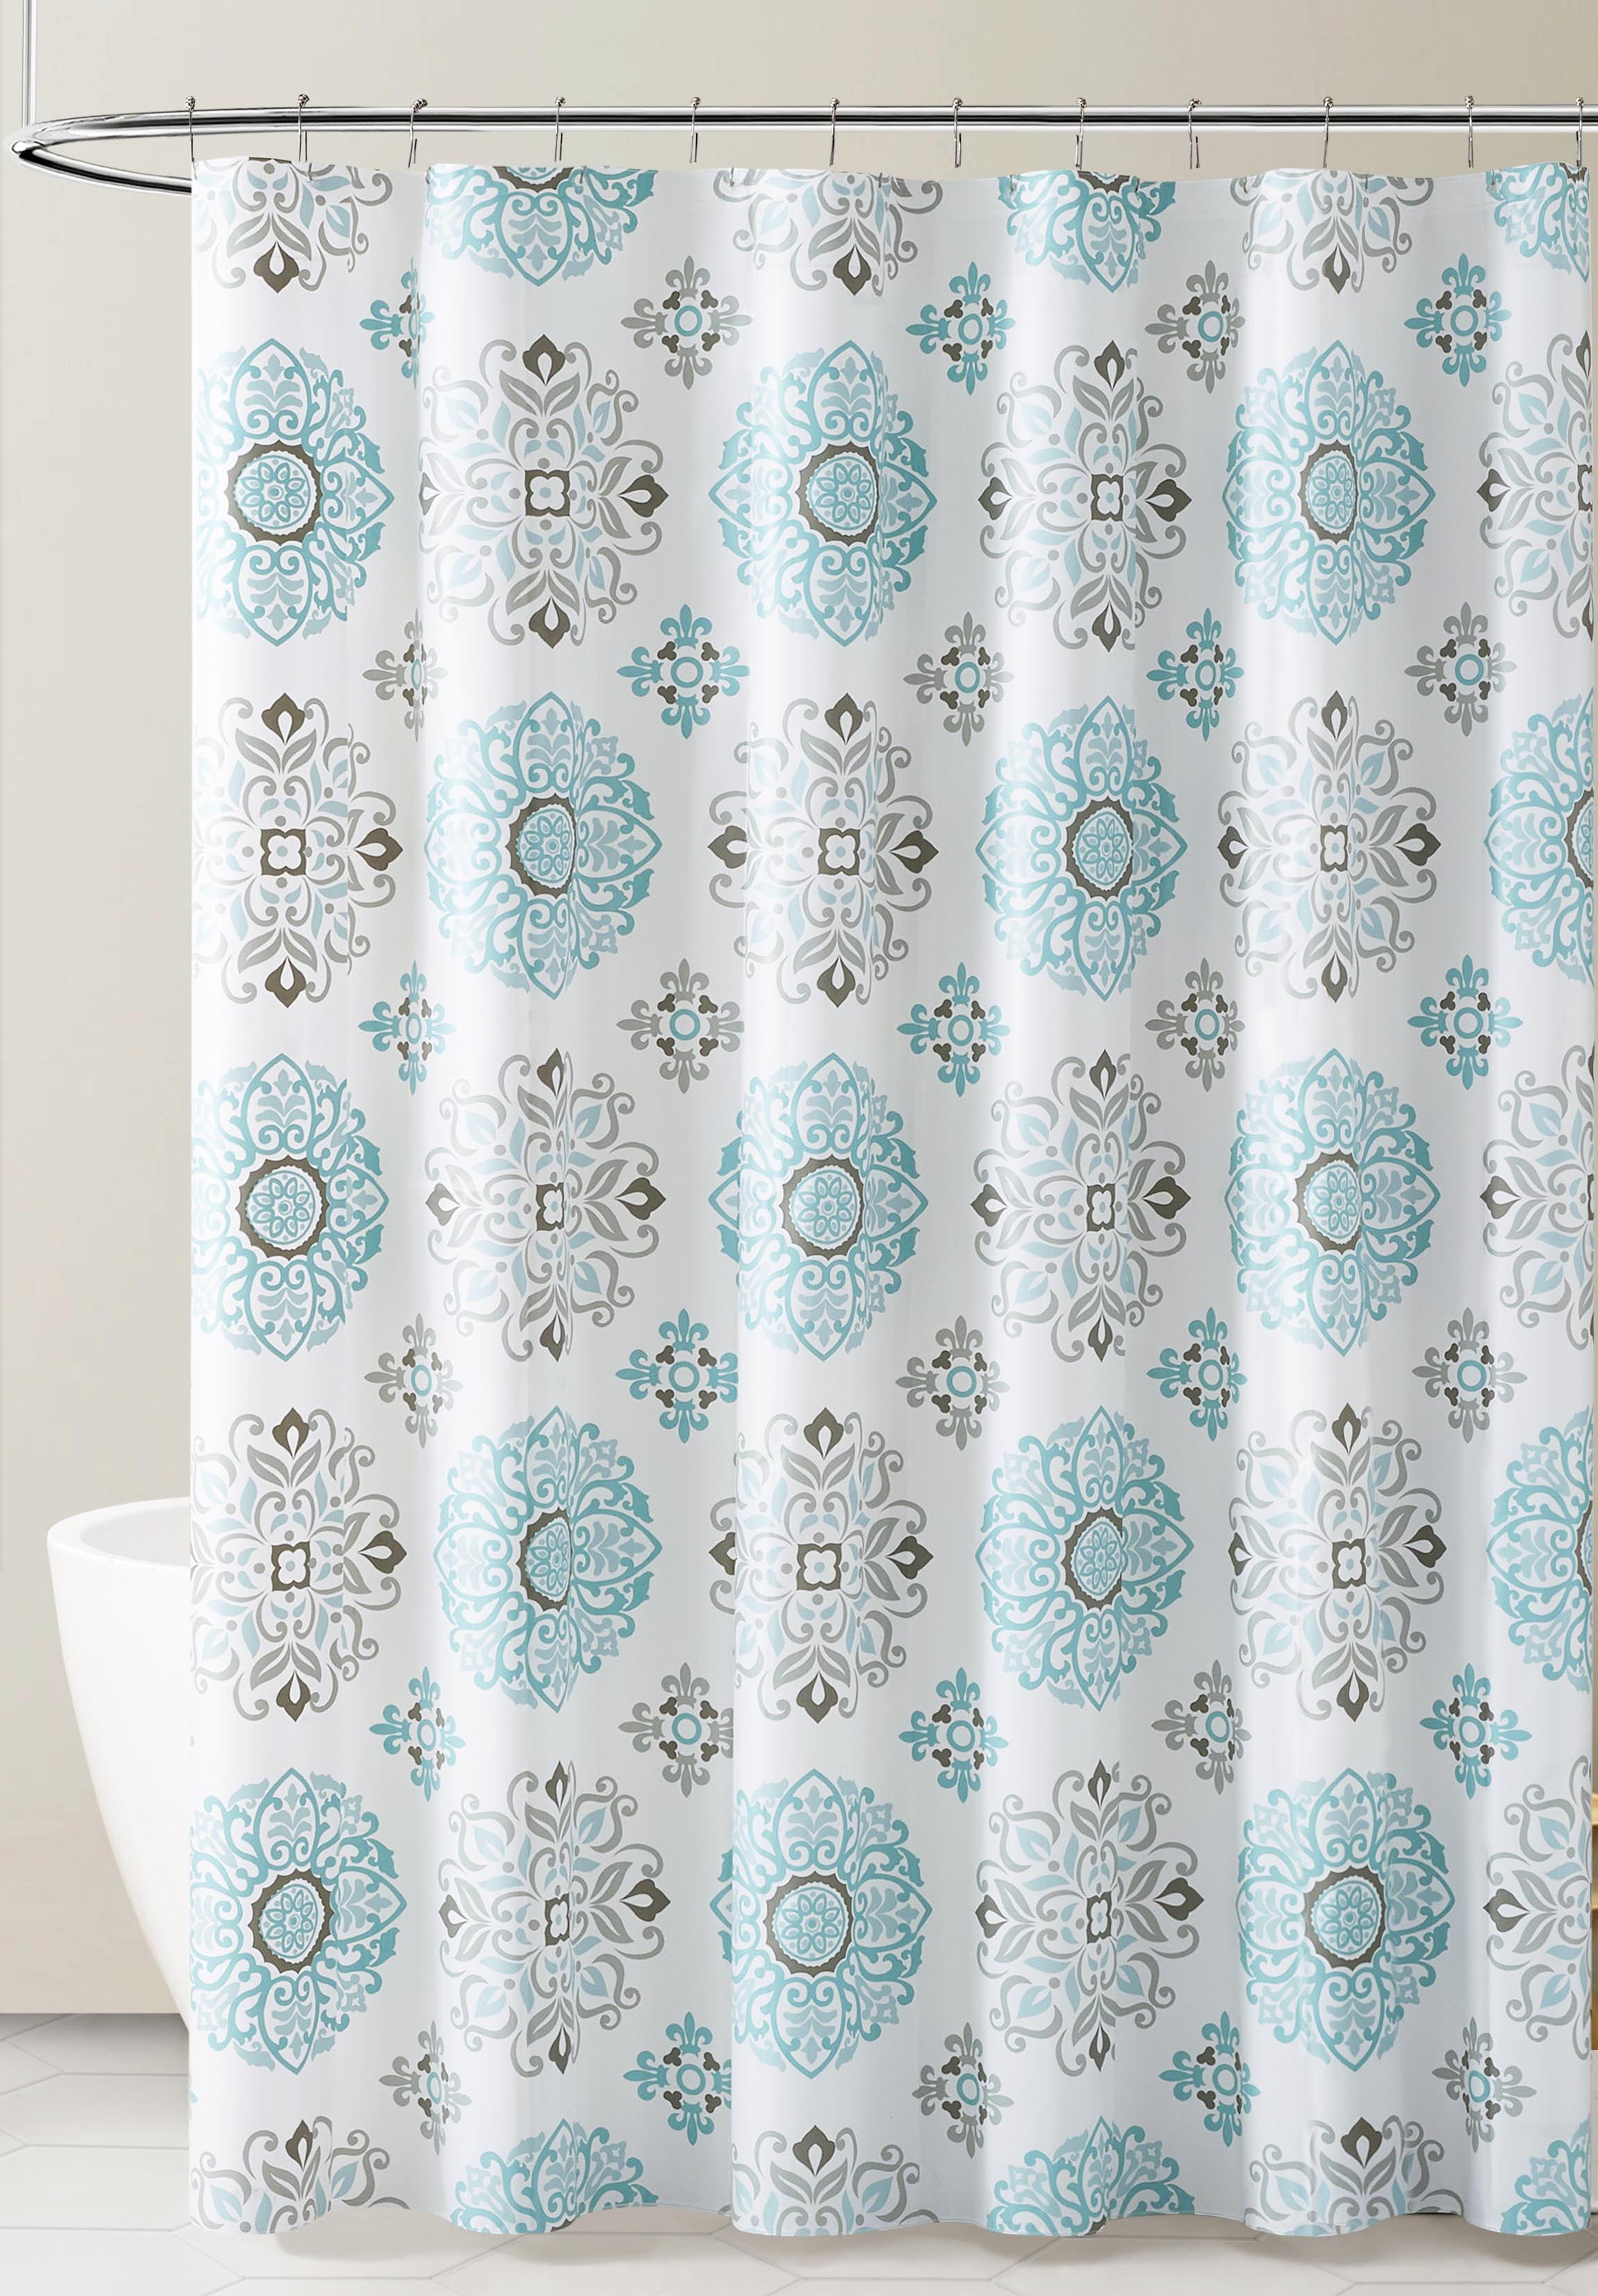 peva shower curtain liner odorless pvc and chlorine free biodegradable mildew free eco friendly size 72l blue gray and white medallion